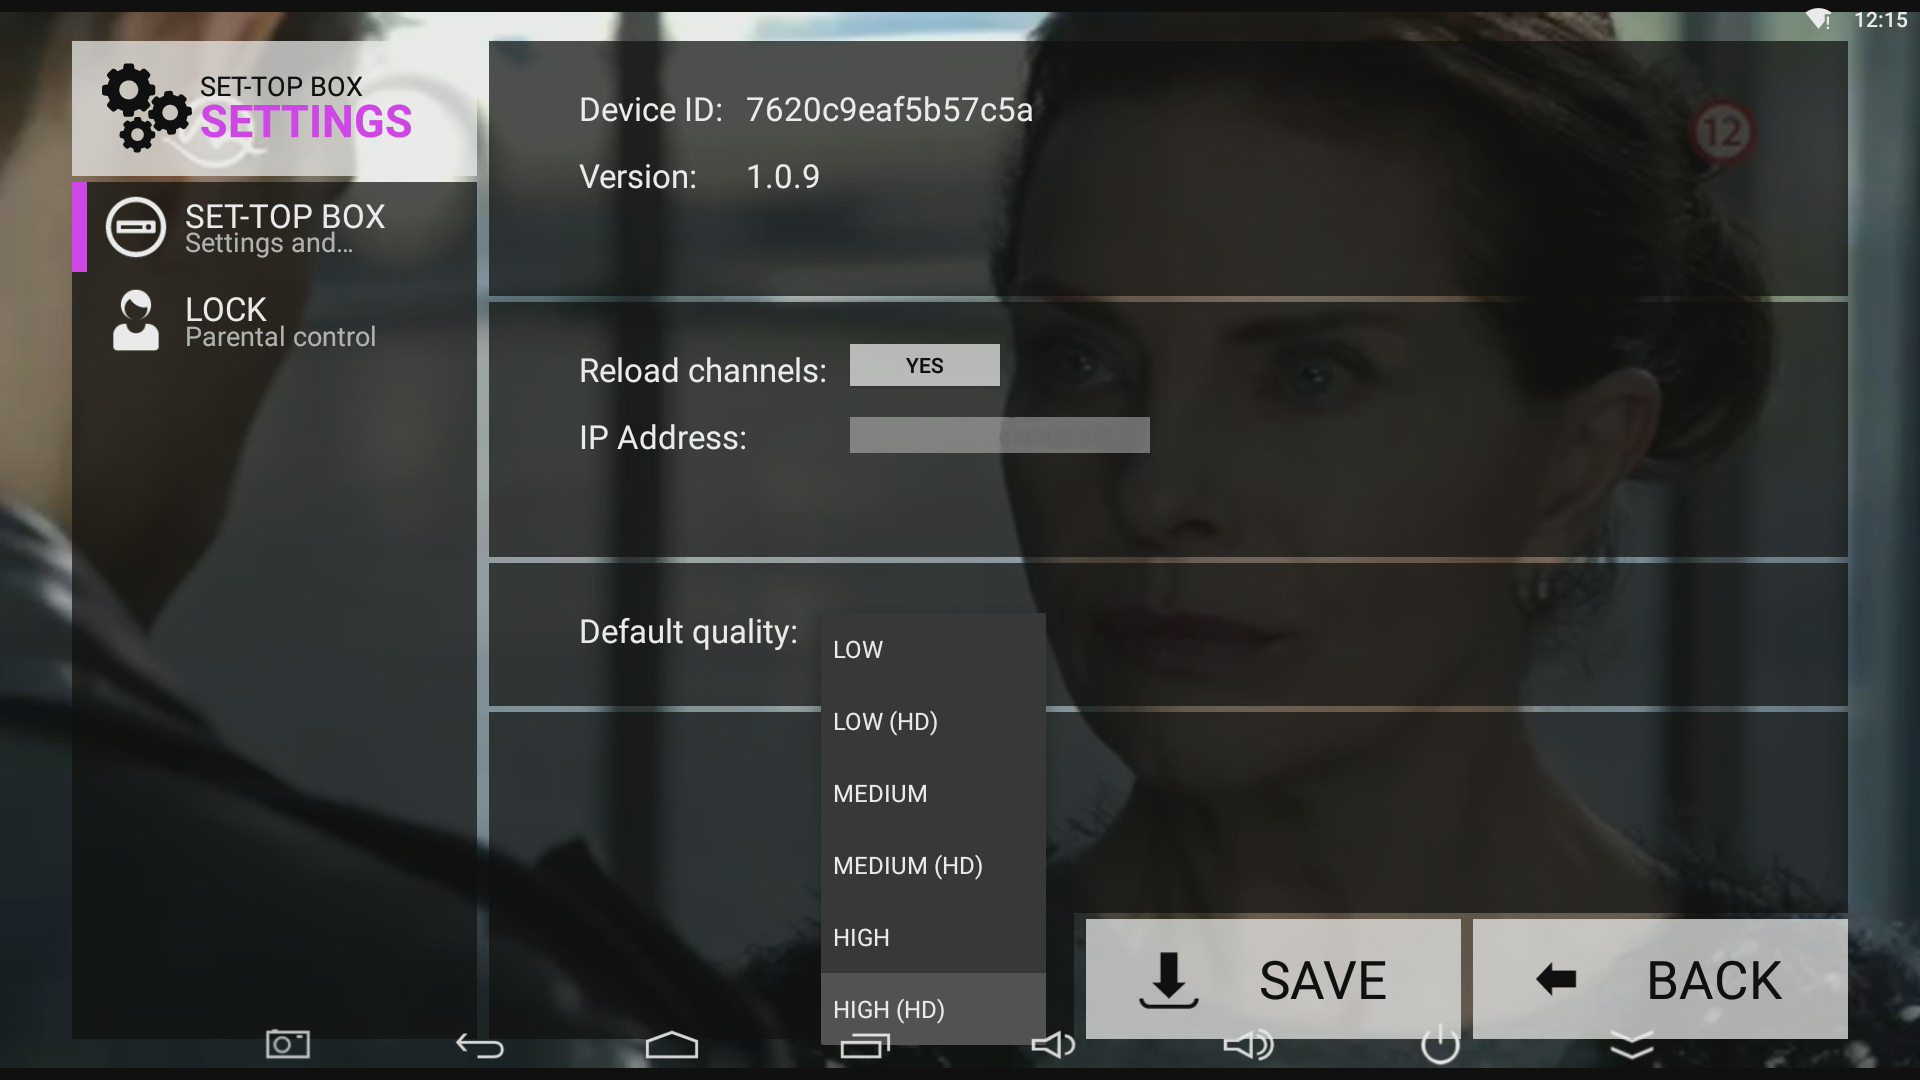 IPTV STBs MOBILE APPs > Mobile devices / APPs > Android TV